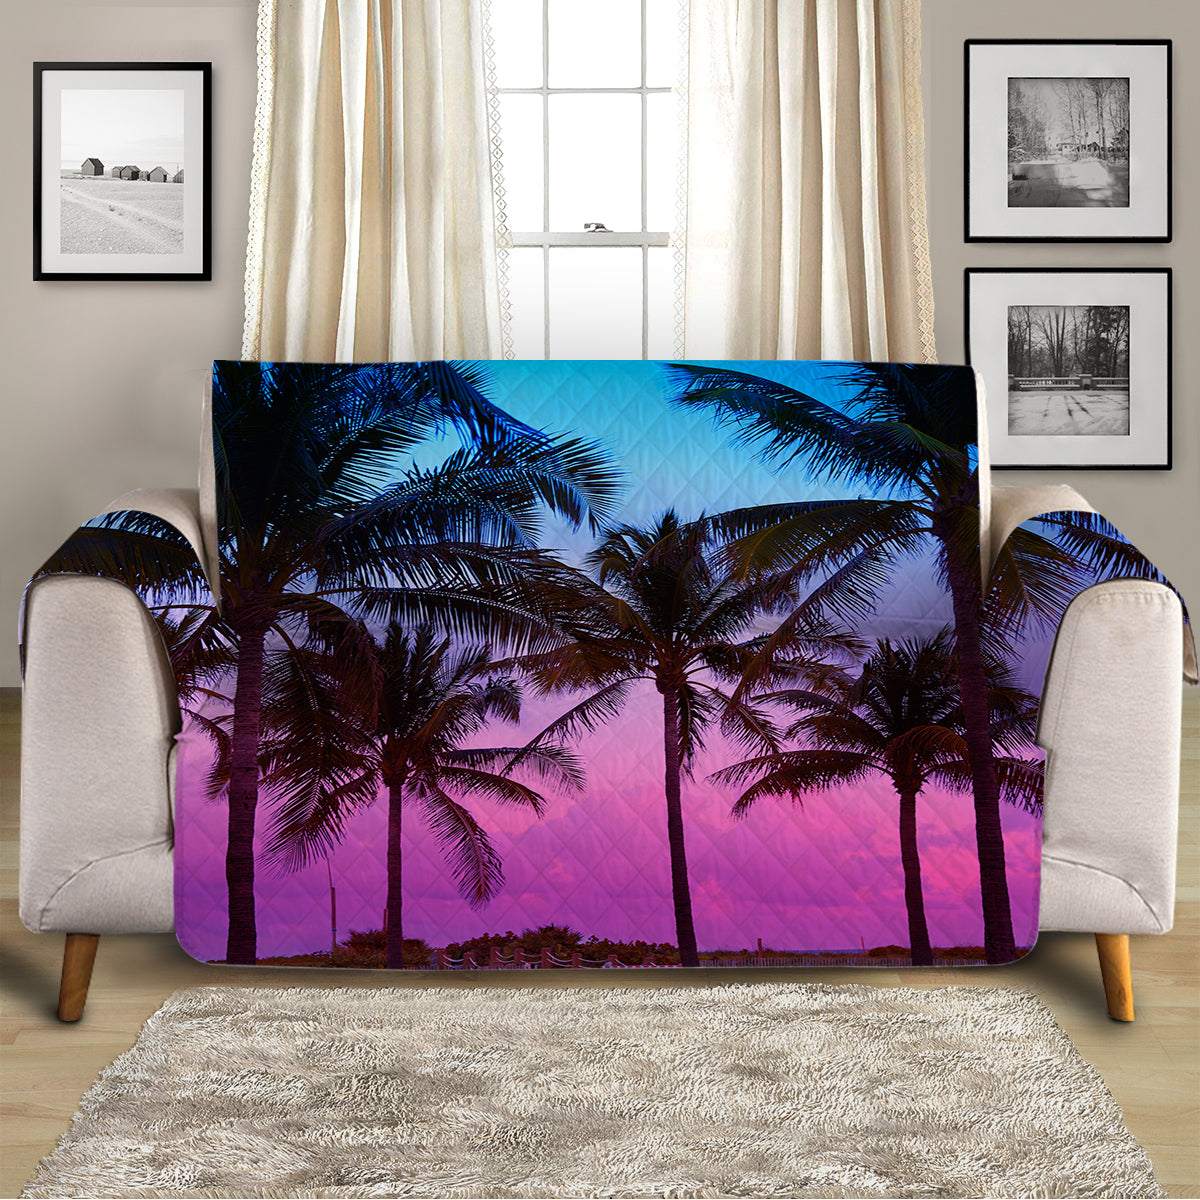 Tropical Skies Sofa Cover